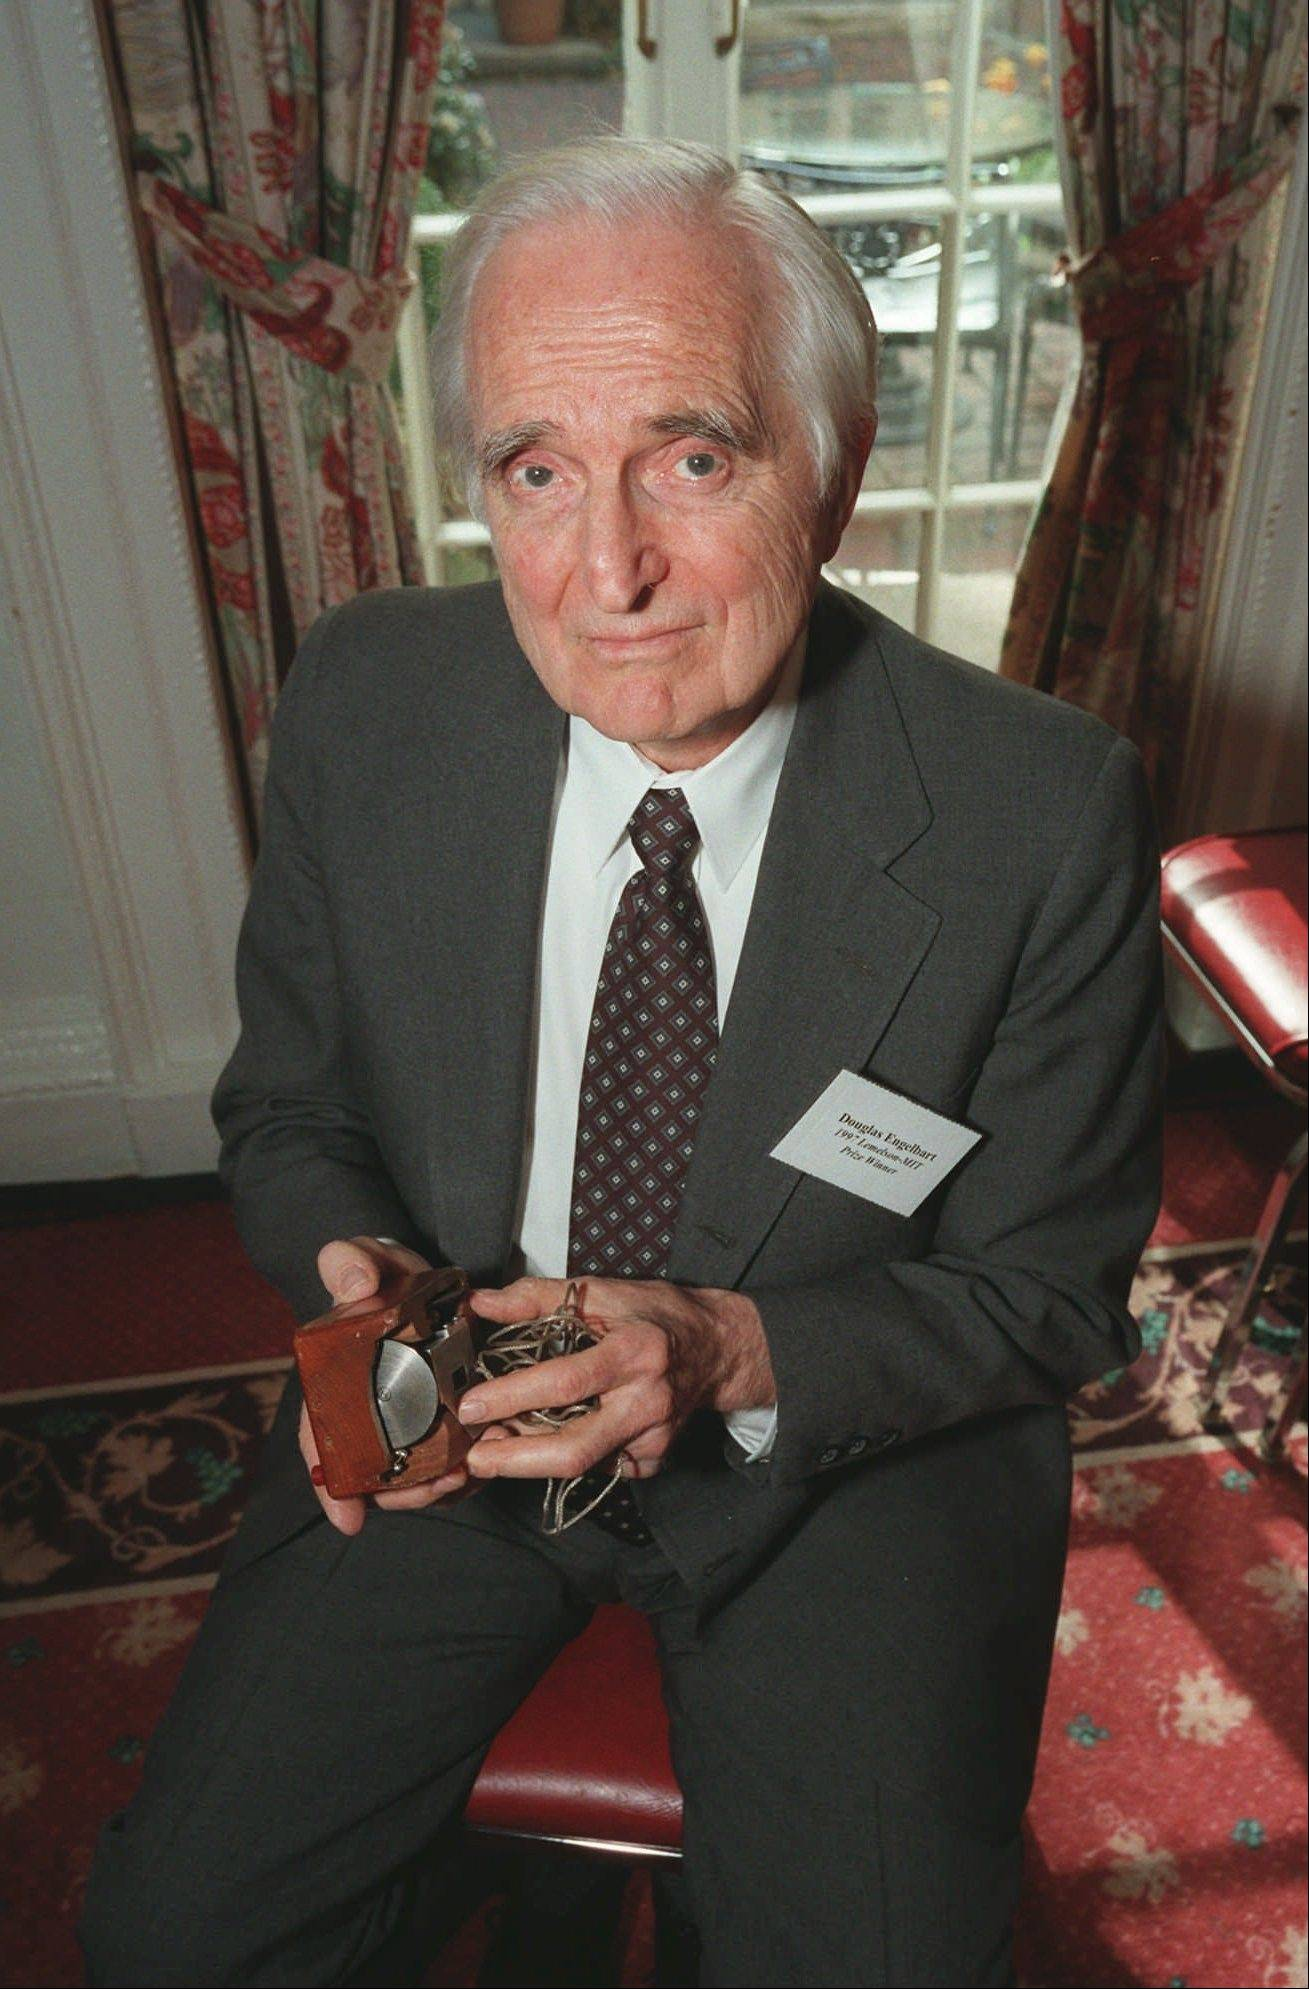 In this April 9, 1997, file photo, Doug Engelbart, inventor of the computer mouse and winner of the half-million dollar 1997 Lemelson-MIT prize, poses with the computer mouse he designed, in New York. Engelbart has died at the age of 88. The cause of death wasn't immediately known.